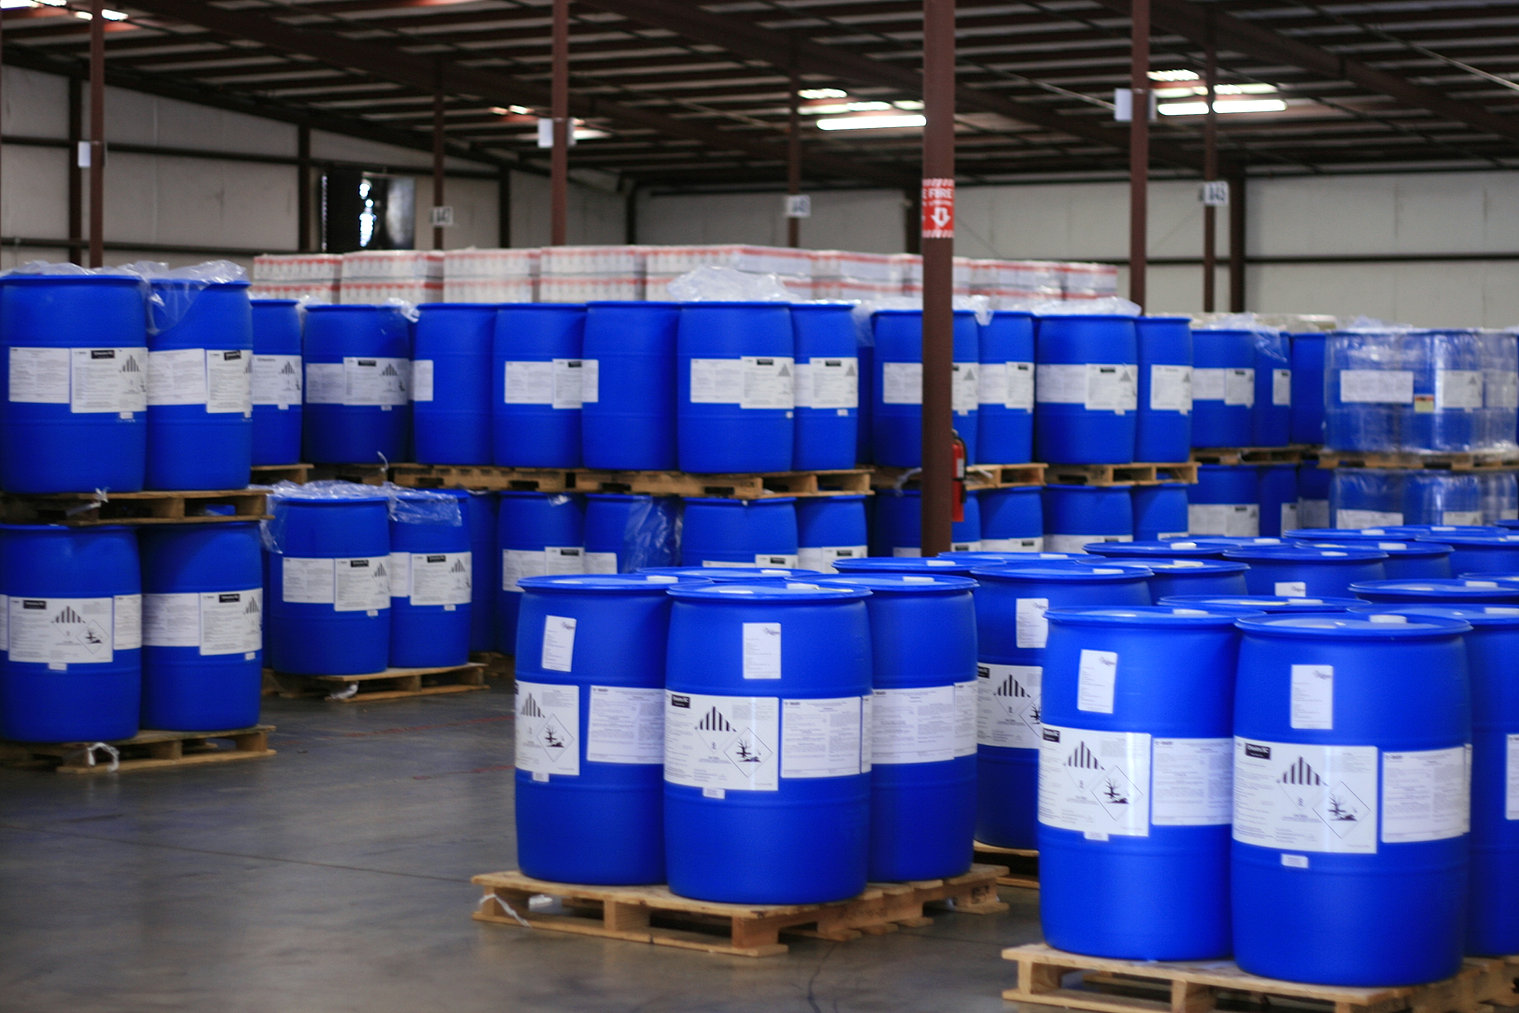 Dangerous Goods Packaging And Ispm 15 Crating For Iata